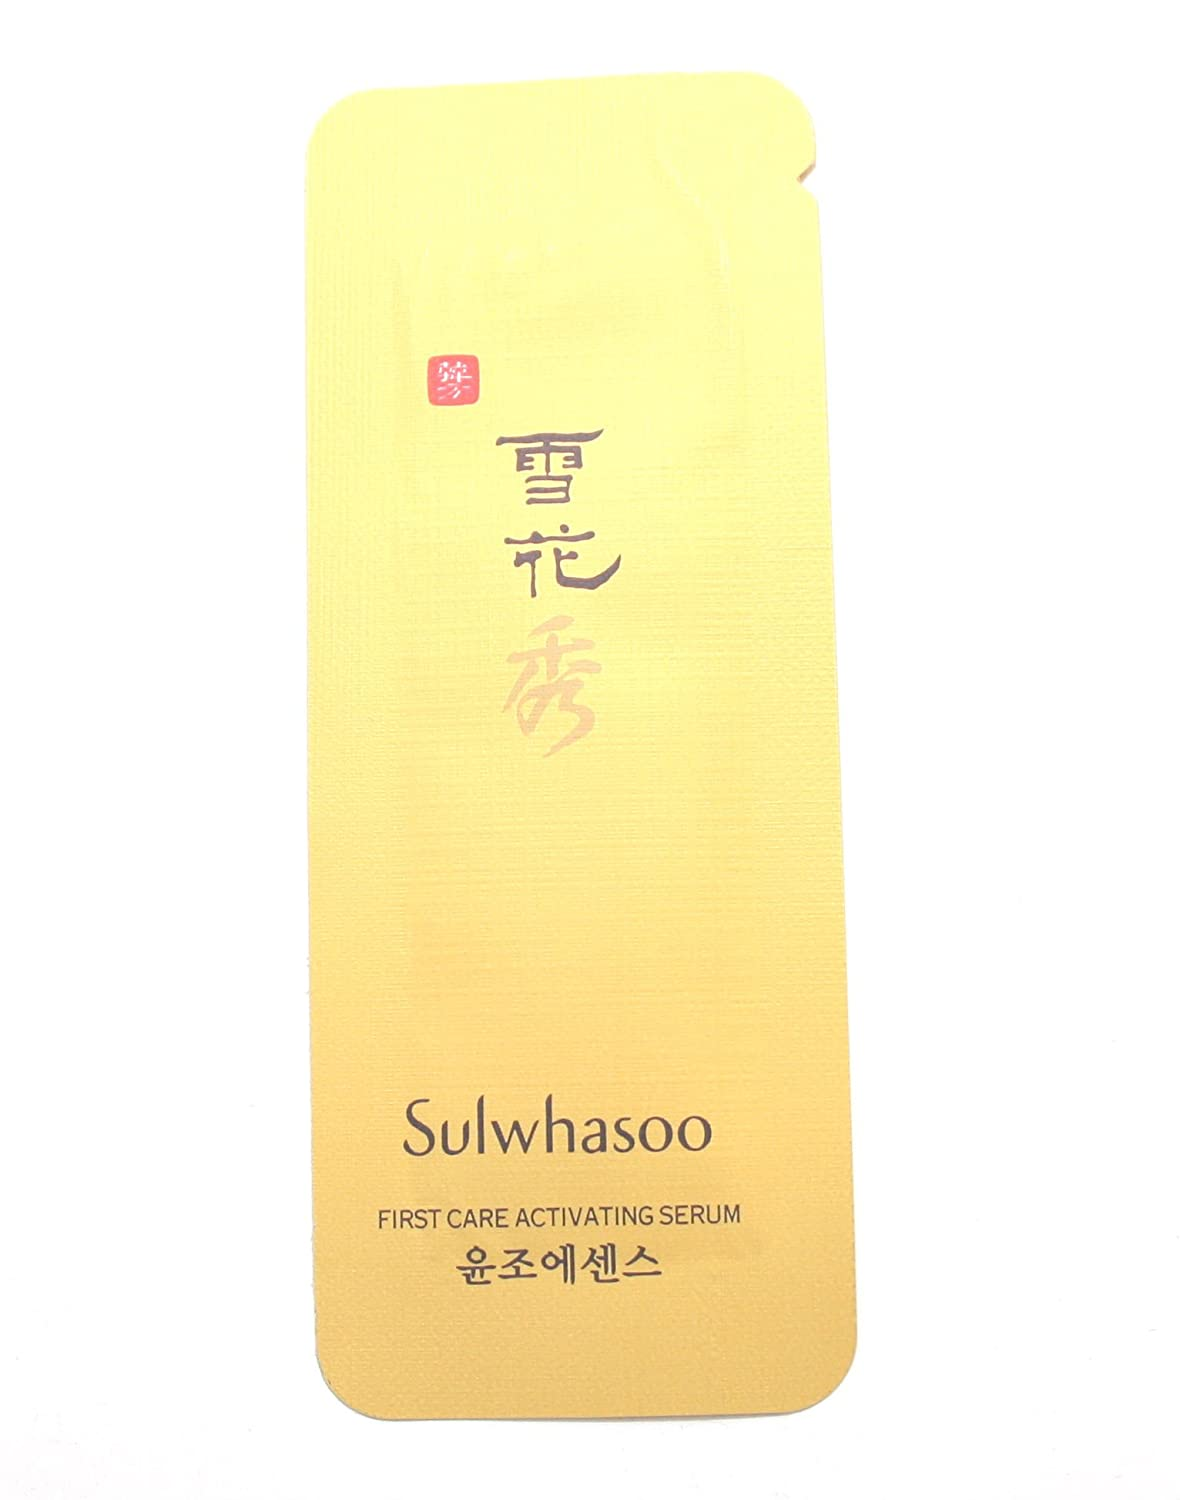 30 X Sulwhasoo Sample First Care Serum 1ml. Super Saver Than Normal Size by Sulwhasoo